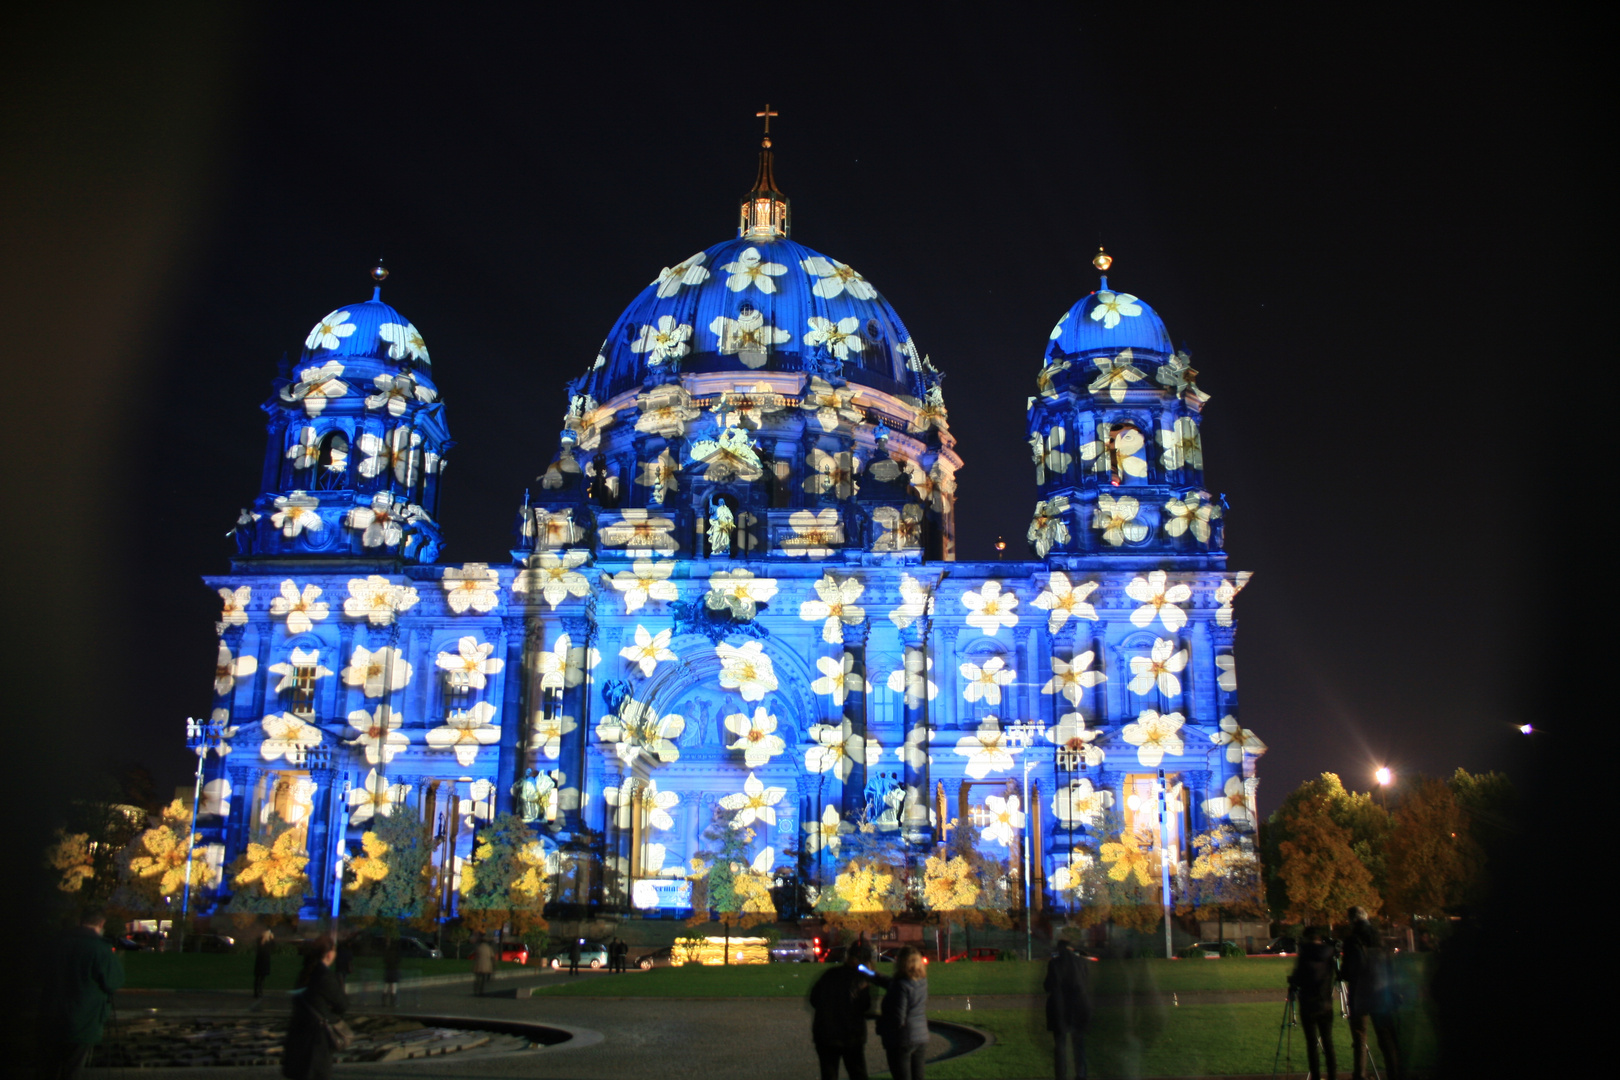 Festival of Lights 2013 Berliner Dom